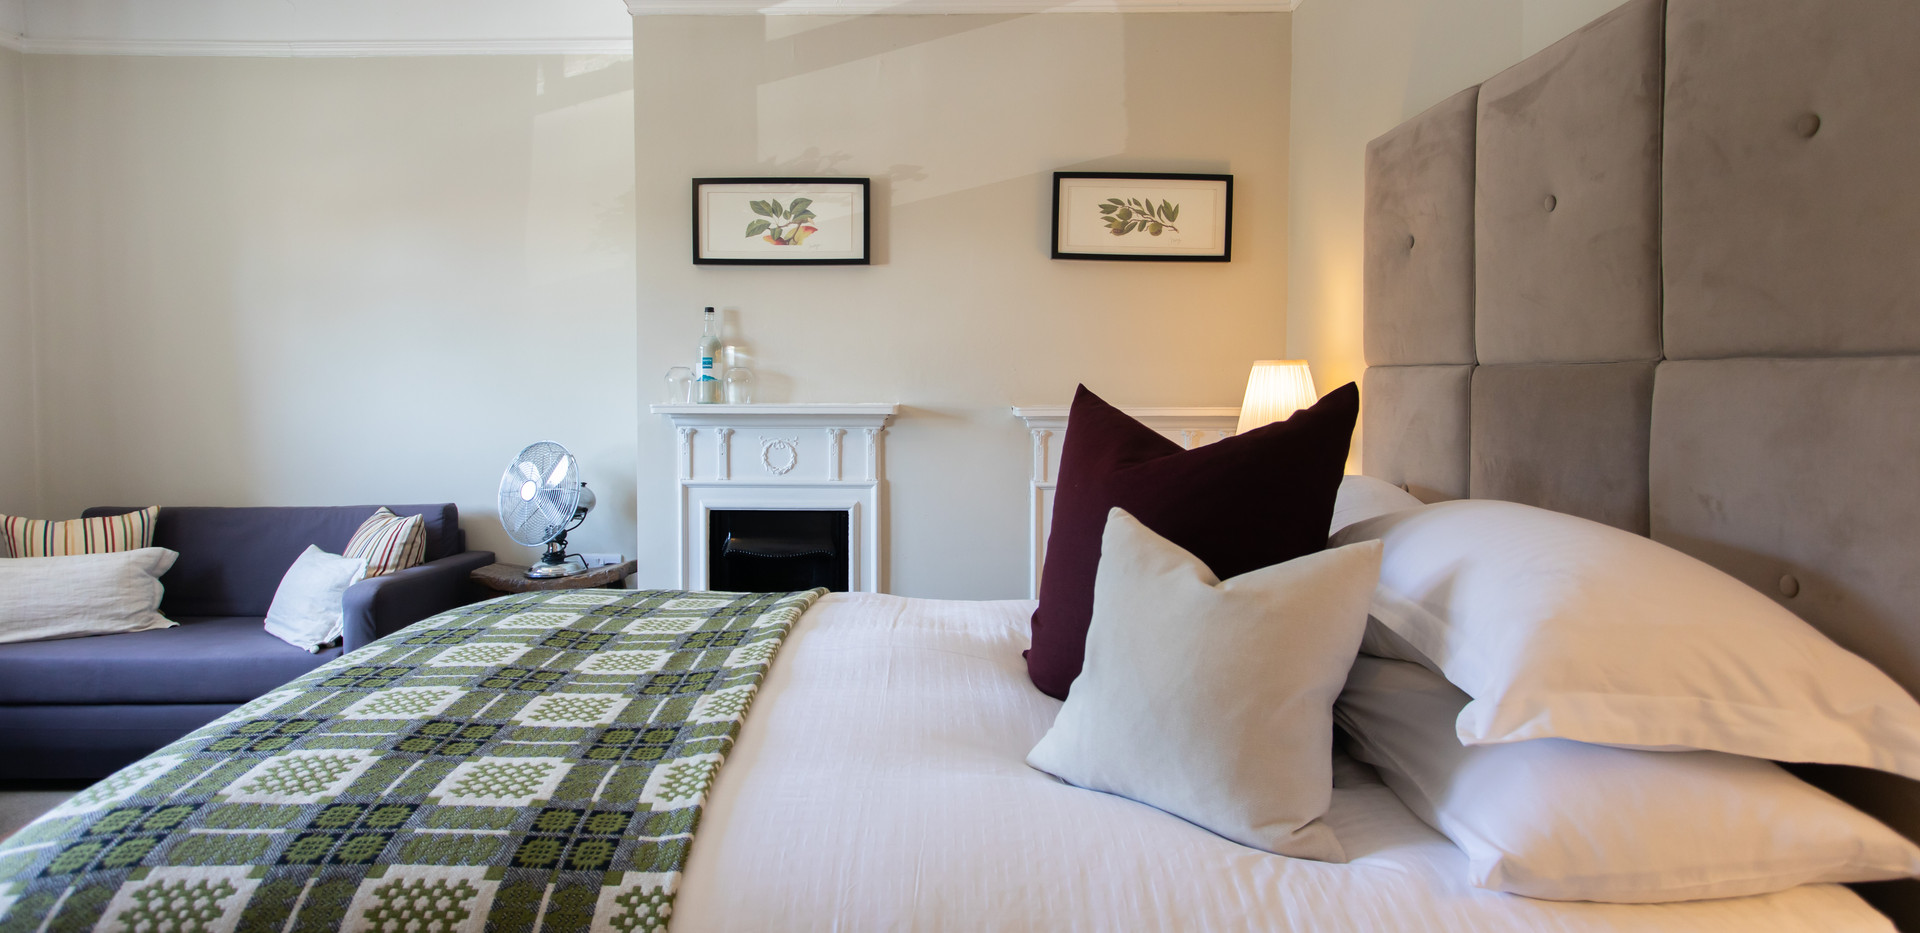 Bed & Breakfast accomodation in West Sussex